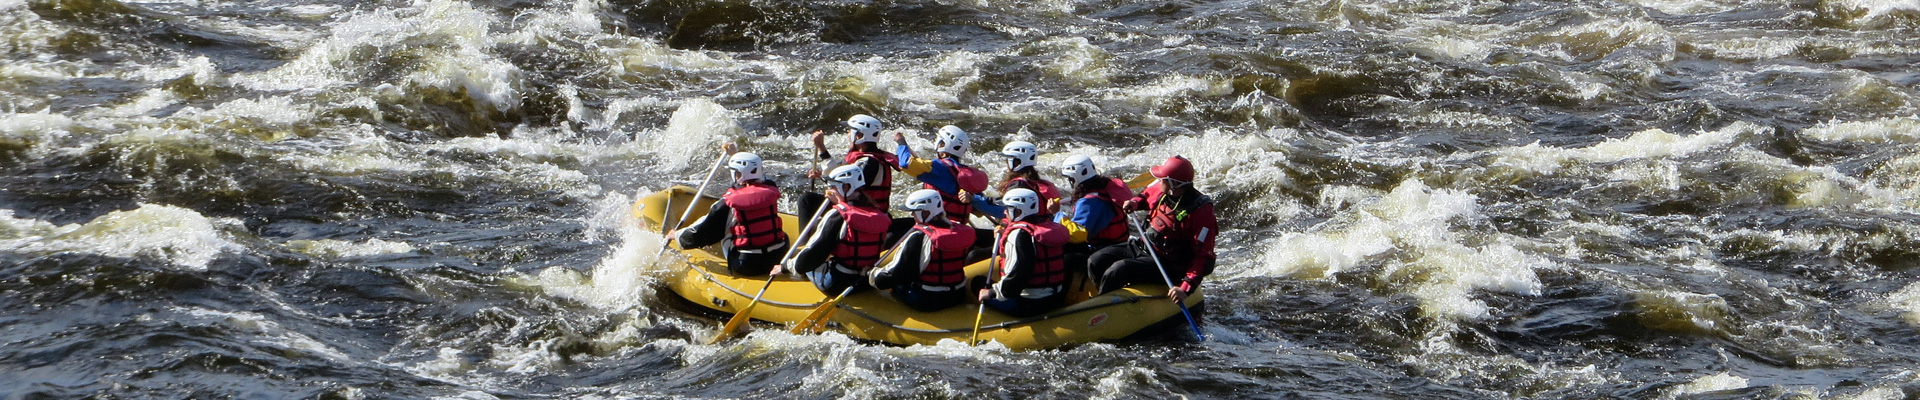 Rafting in Kalix River Swedish Lapland